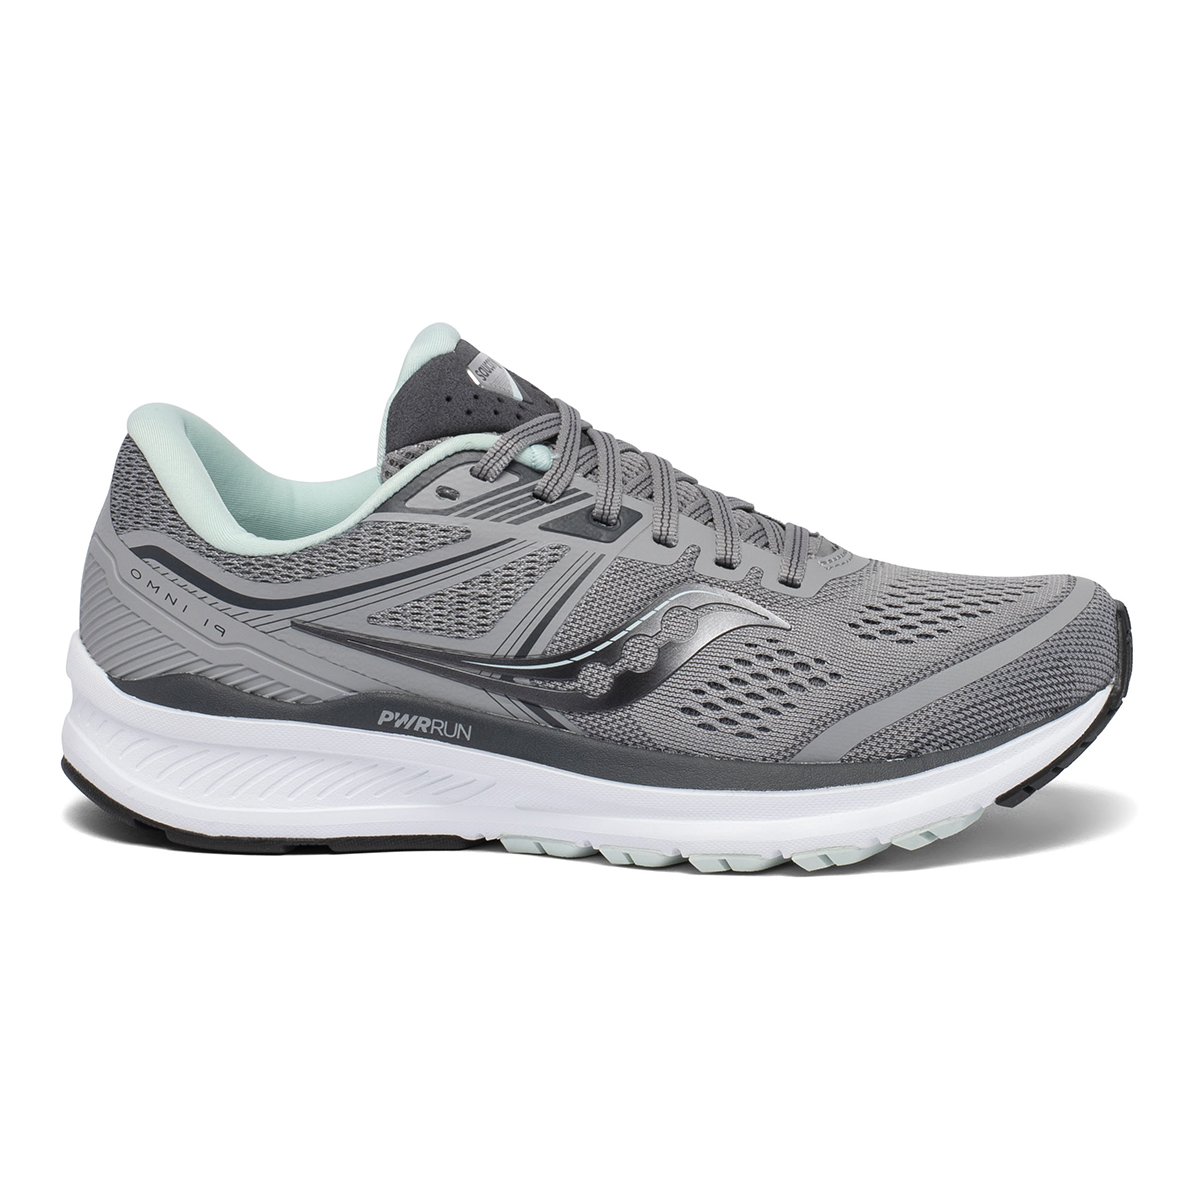 Women's Saucony Omni 19 Running Shoe - Color: White Mutant - Size: 5 - Width: Wide, White Mutant, large, image 1